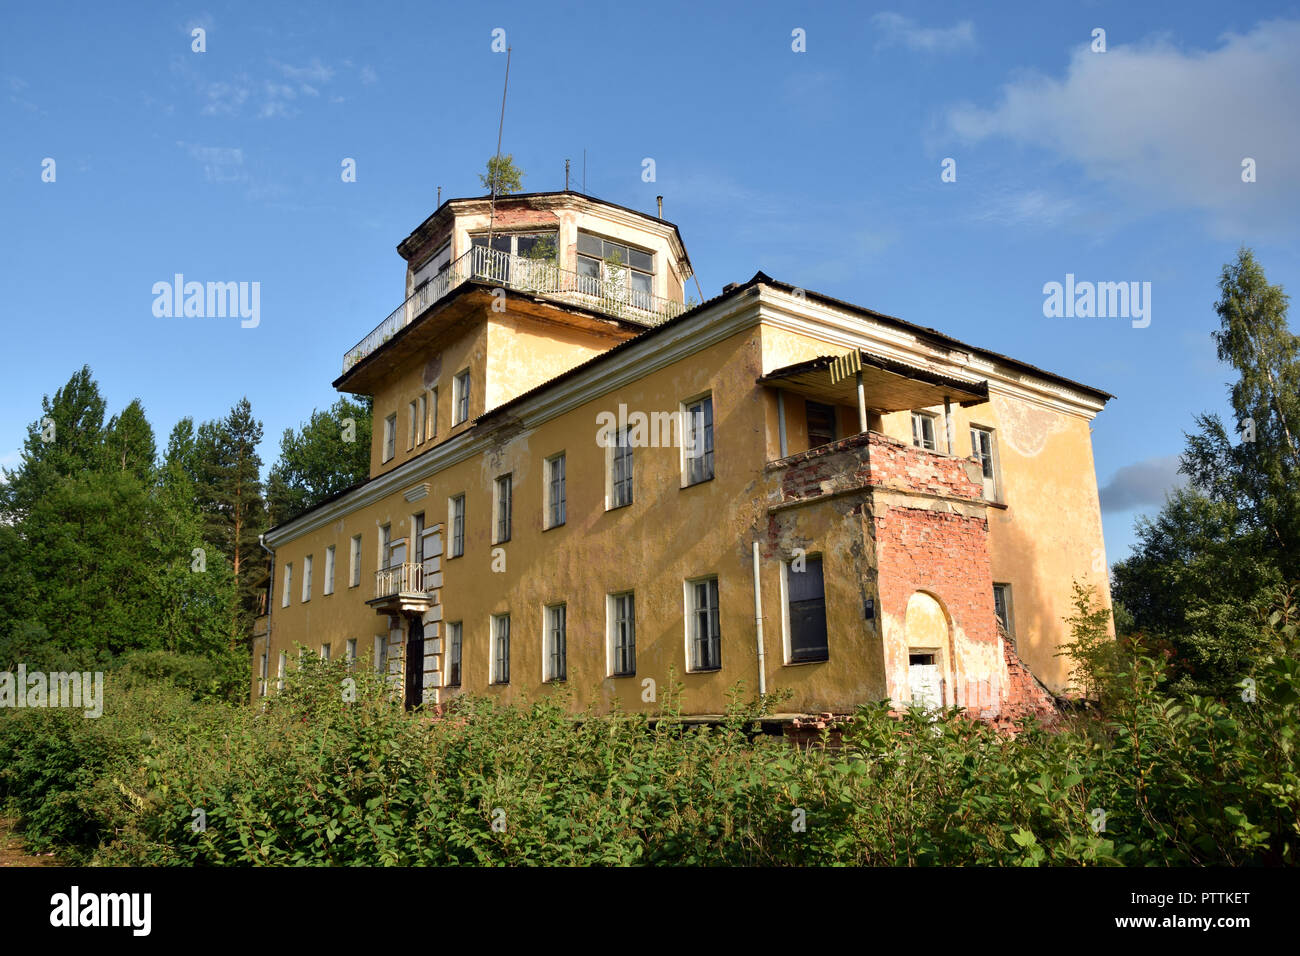 The control tower of the former soviet air base in Tartu, Estonia. - Stock Image